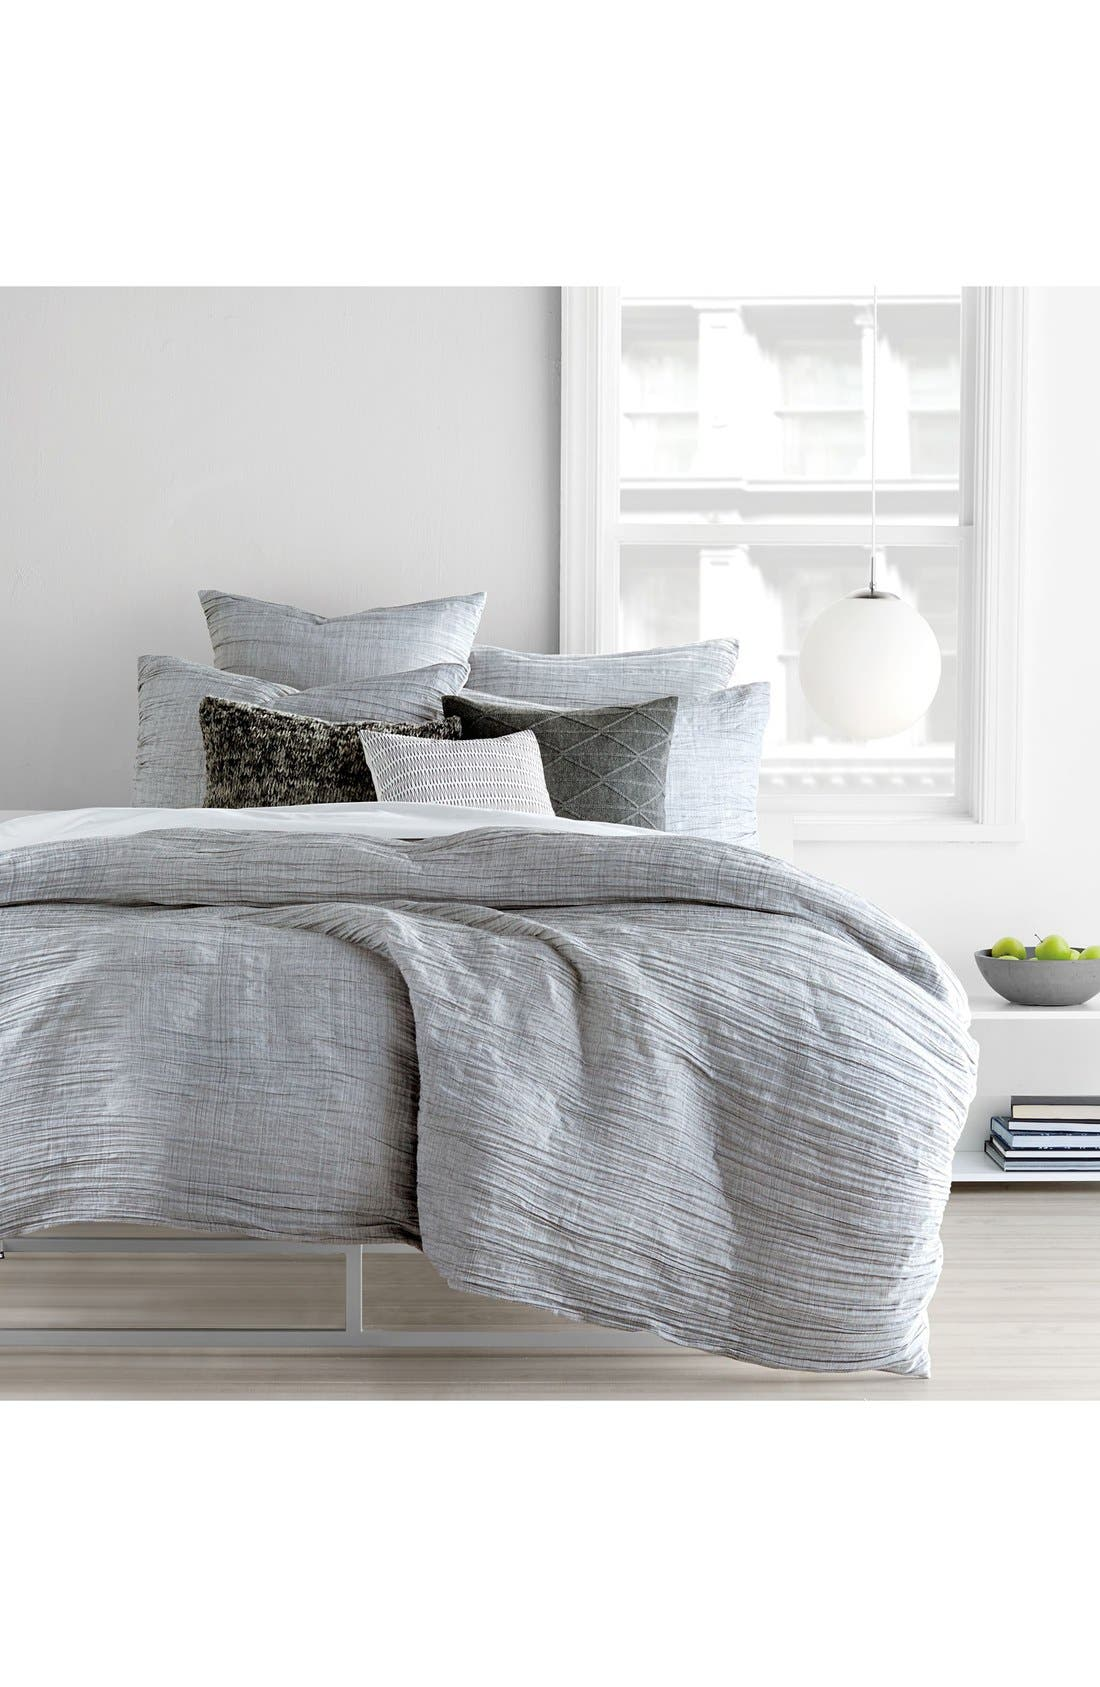 DKNY 'City Pleat' Bedding Collection